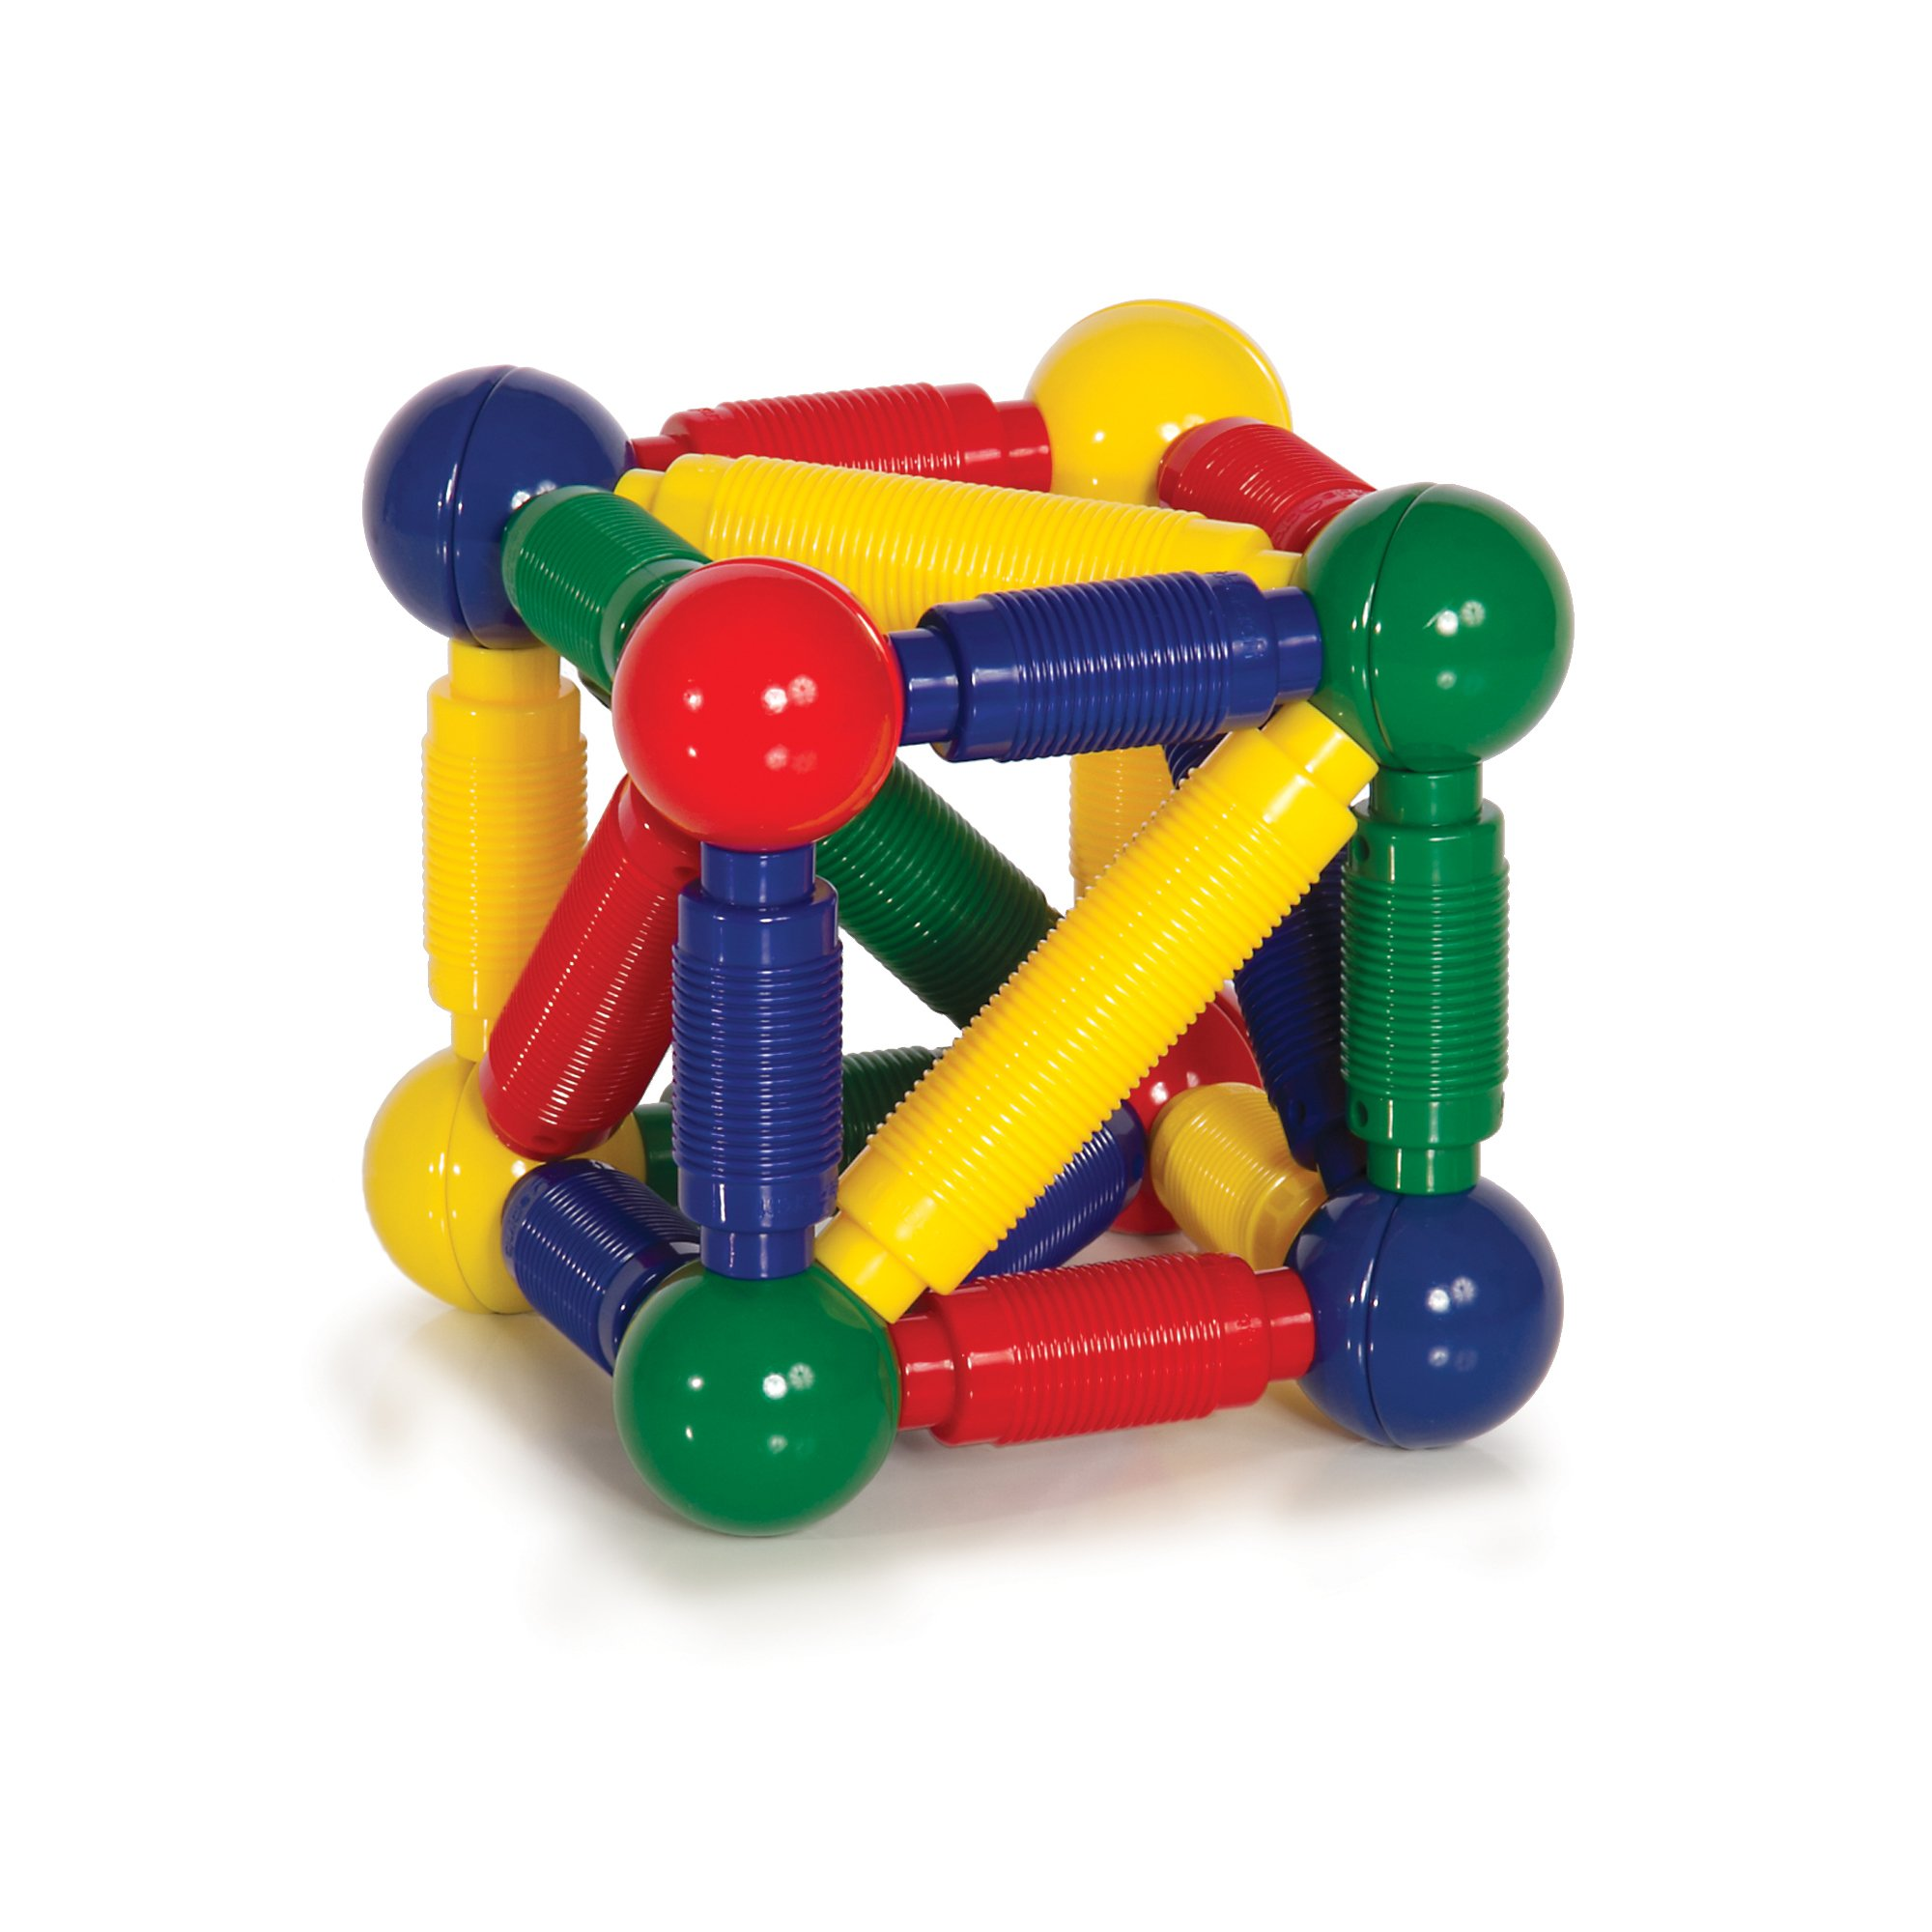 Guidecraft Better Builders 30 - Piece Magnetic Ball and Rod Construction Set, STEM Educational Building Toy